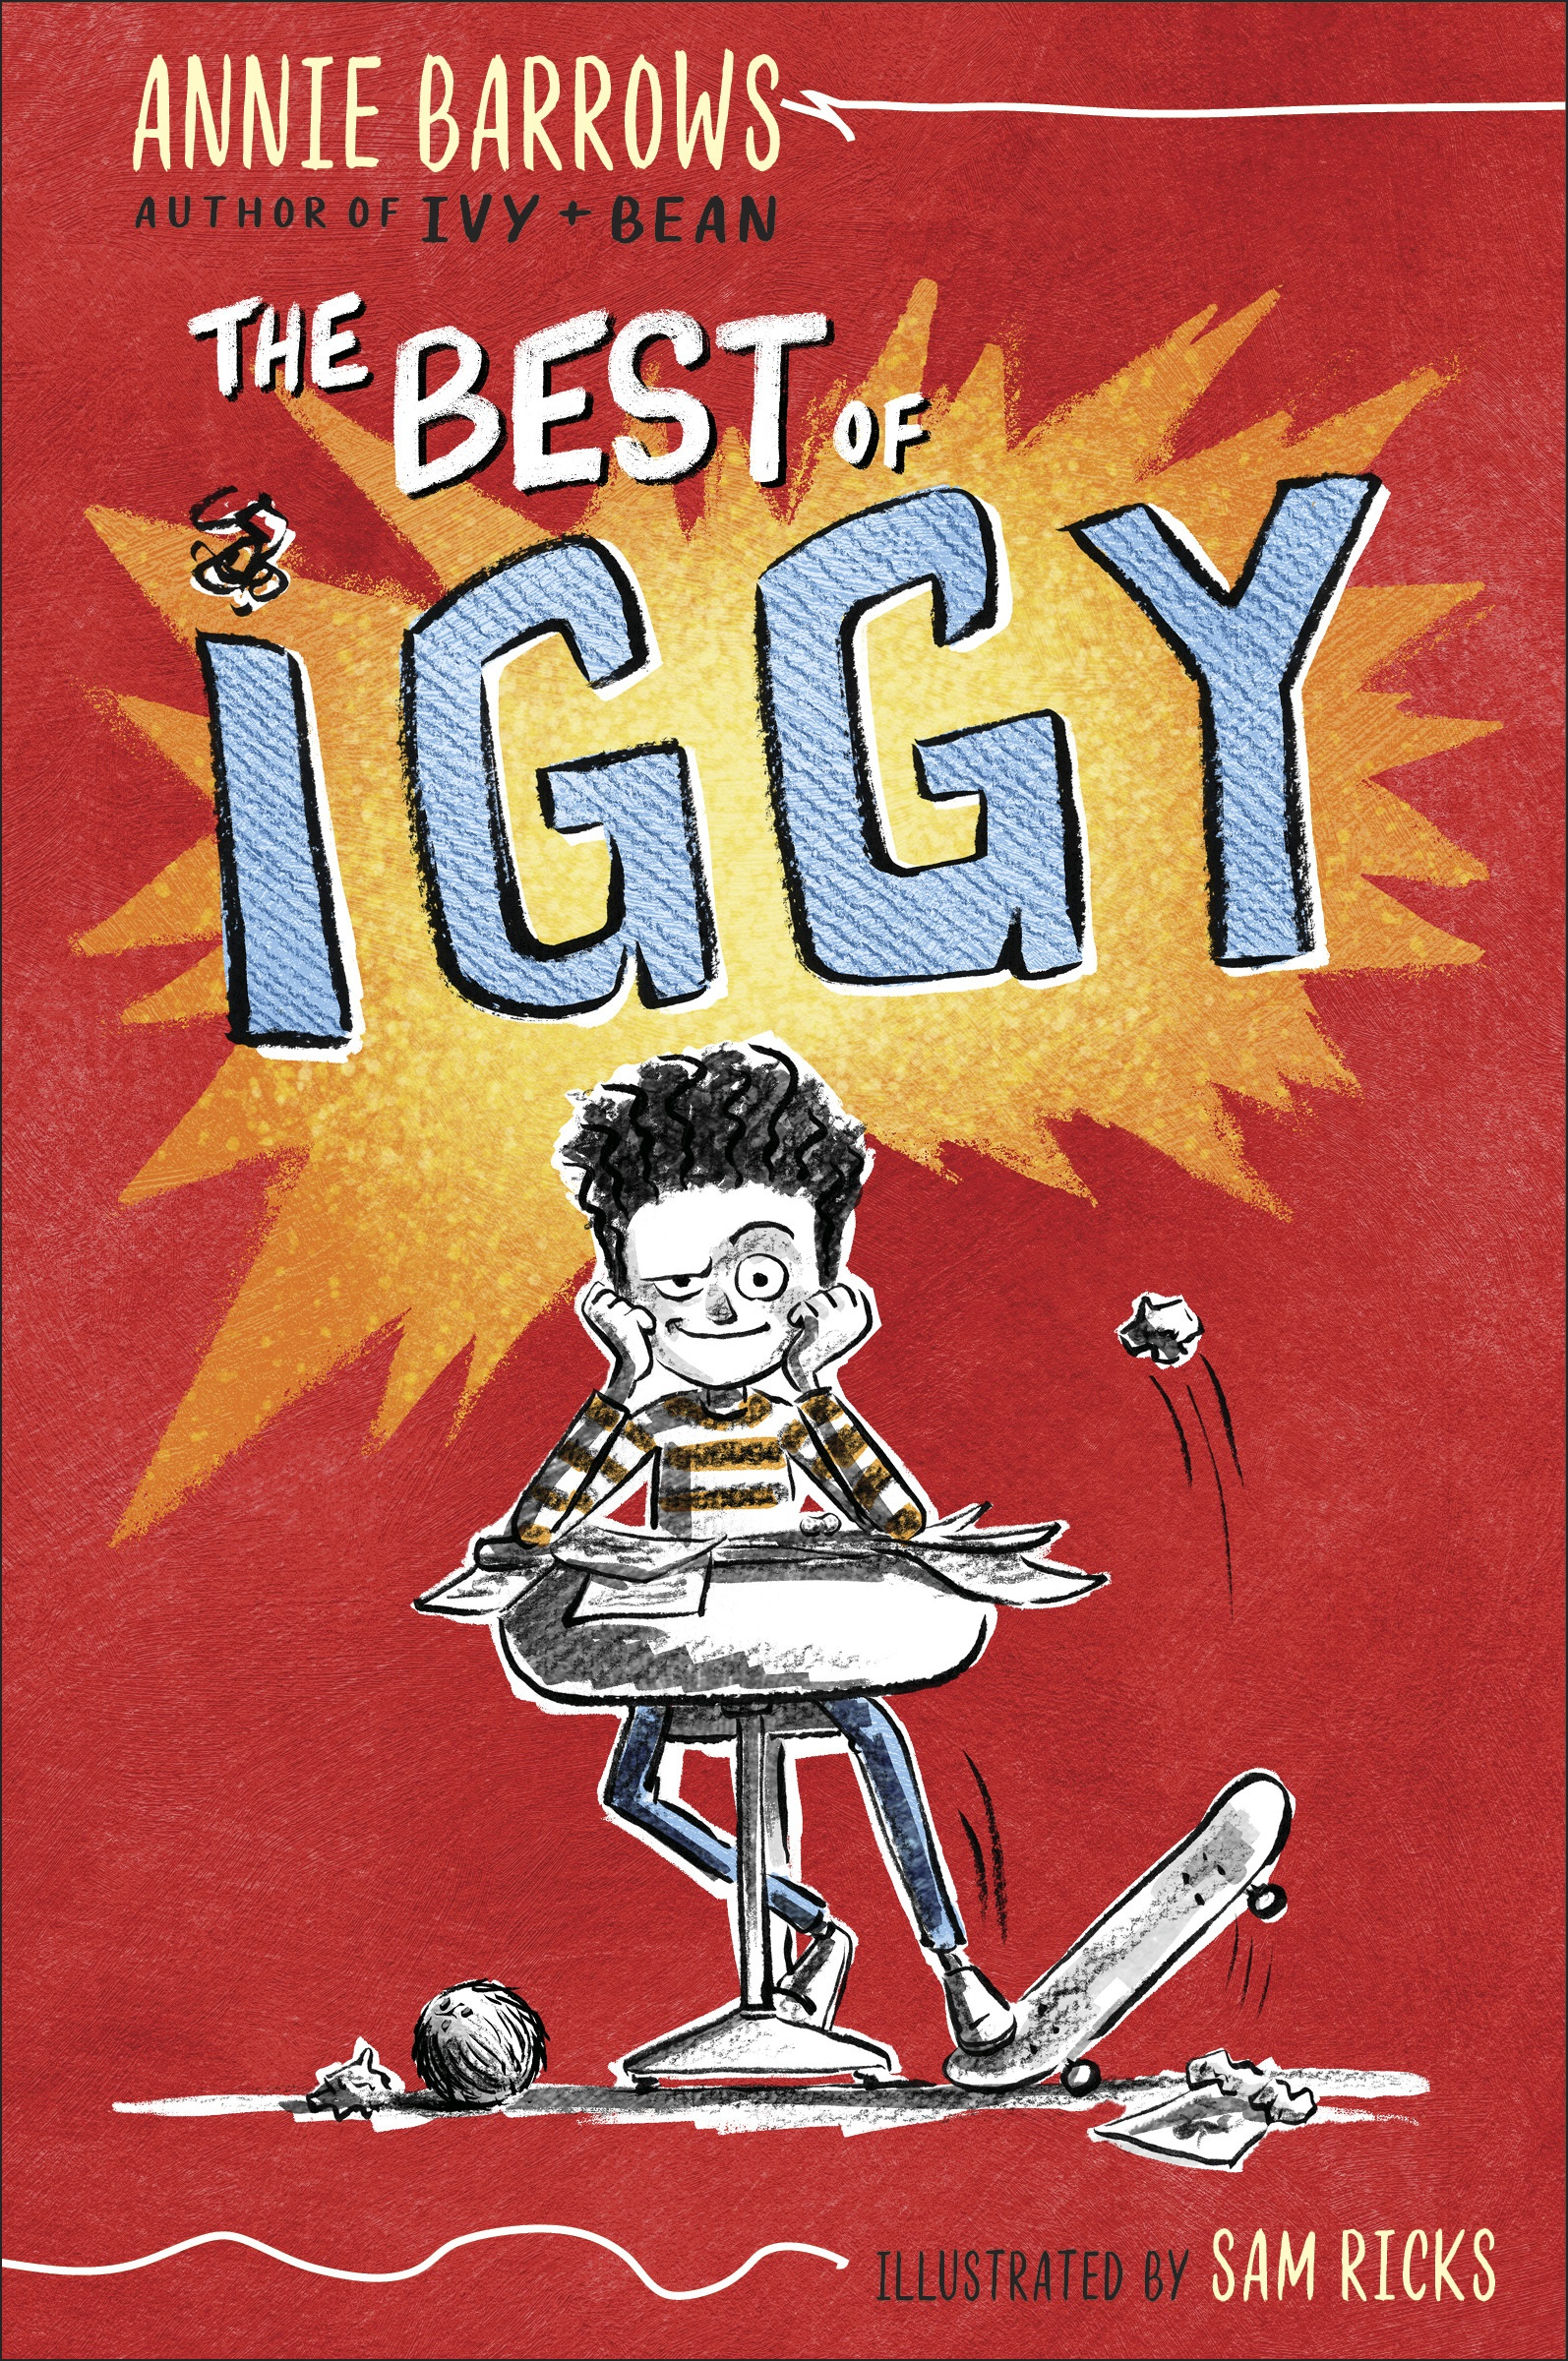 Image result for best of iggy cover""